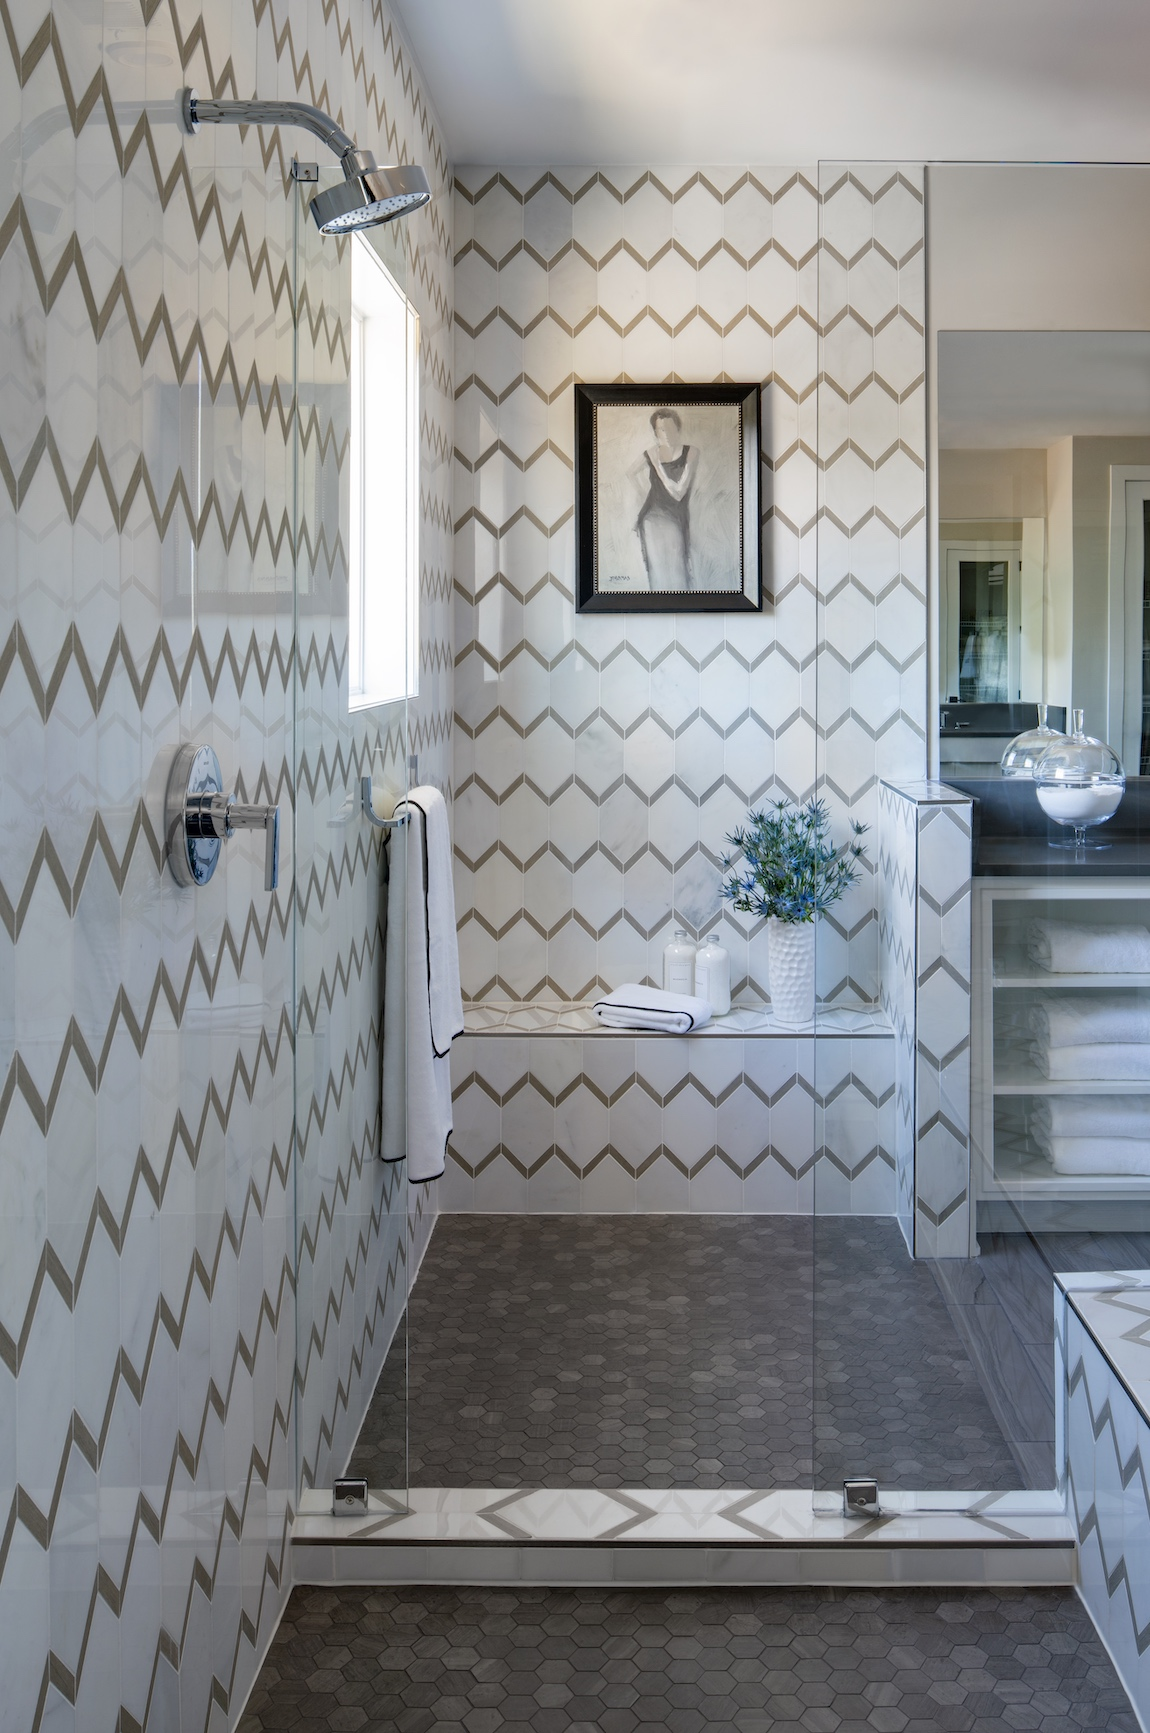 Walk-in shower a seat and a patterned tile.